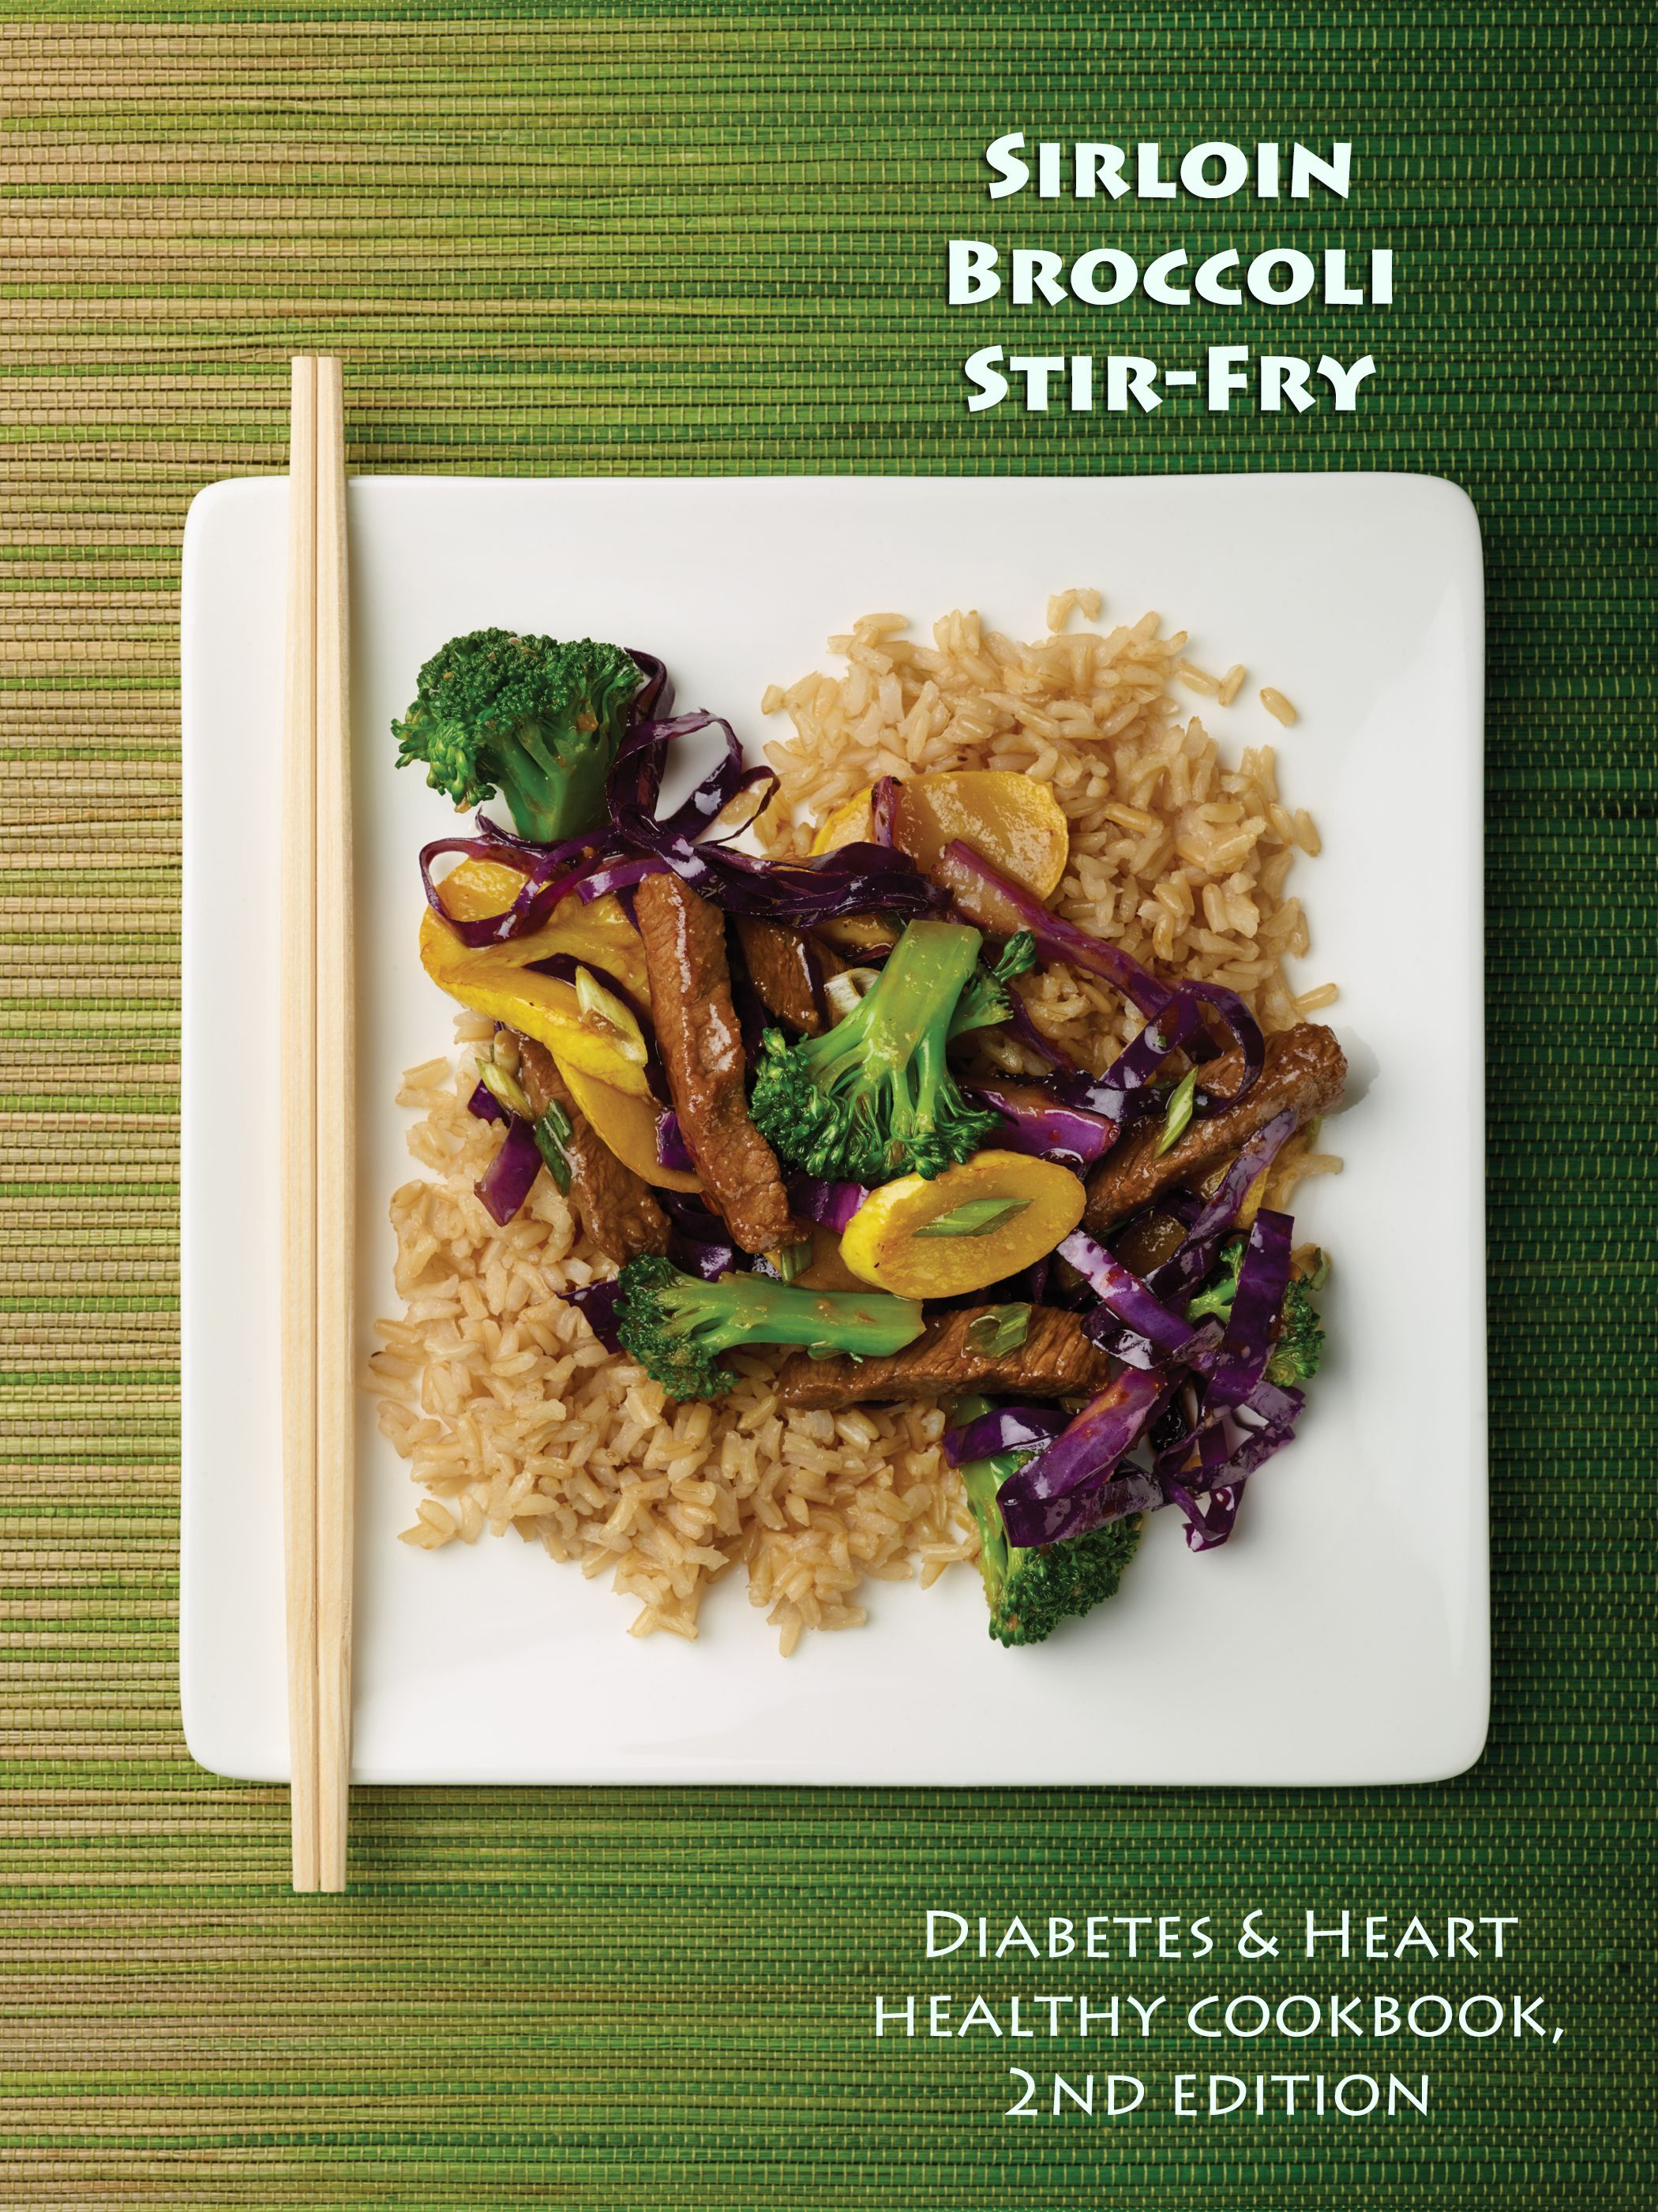 Sirloin broccoli stir fry from the diabetes heart healthy sirloin broccoli stir fry from the diabetes heart healthy cookbook 2nd edition forumfinder Images